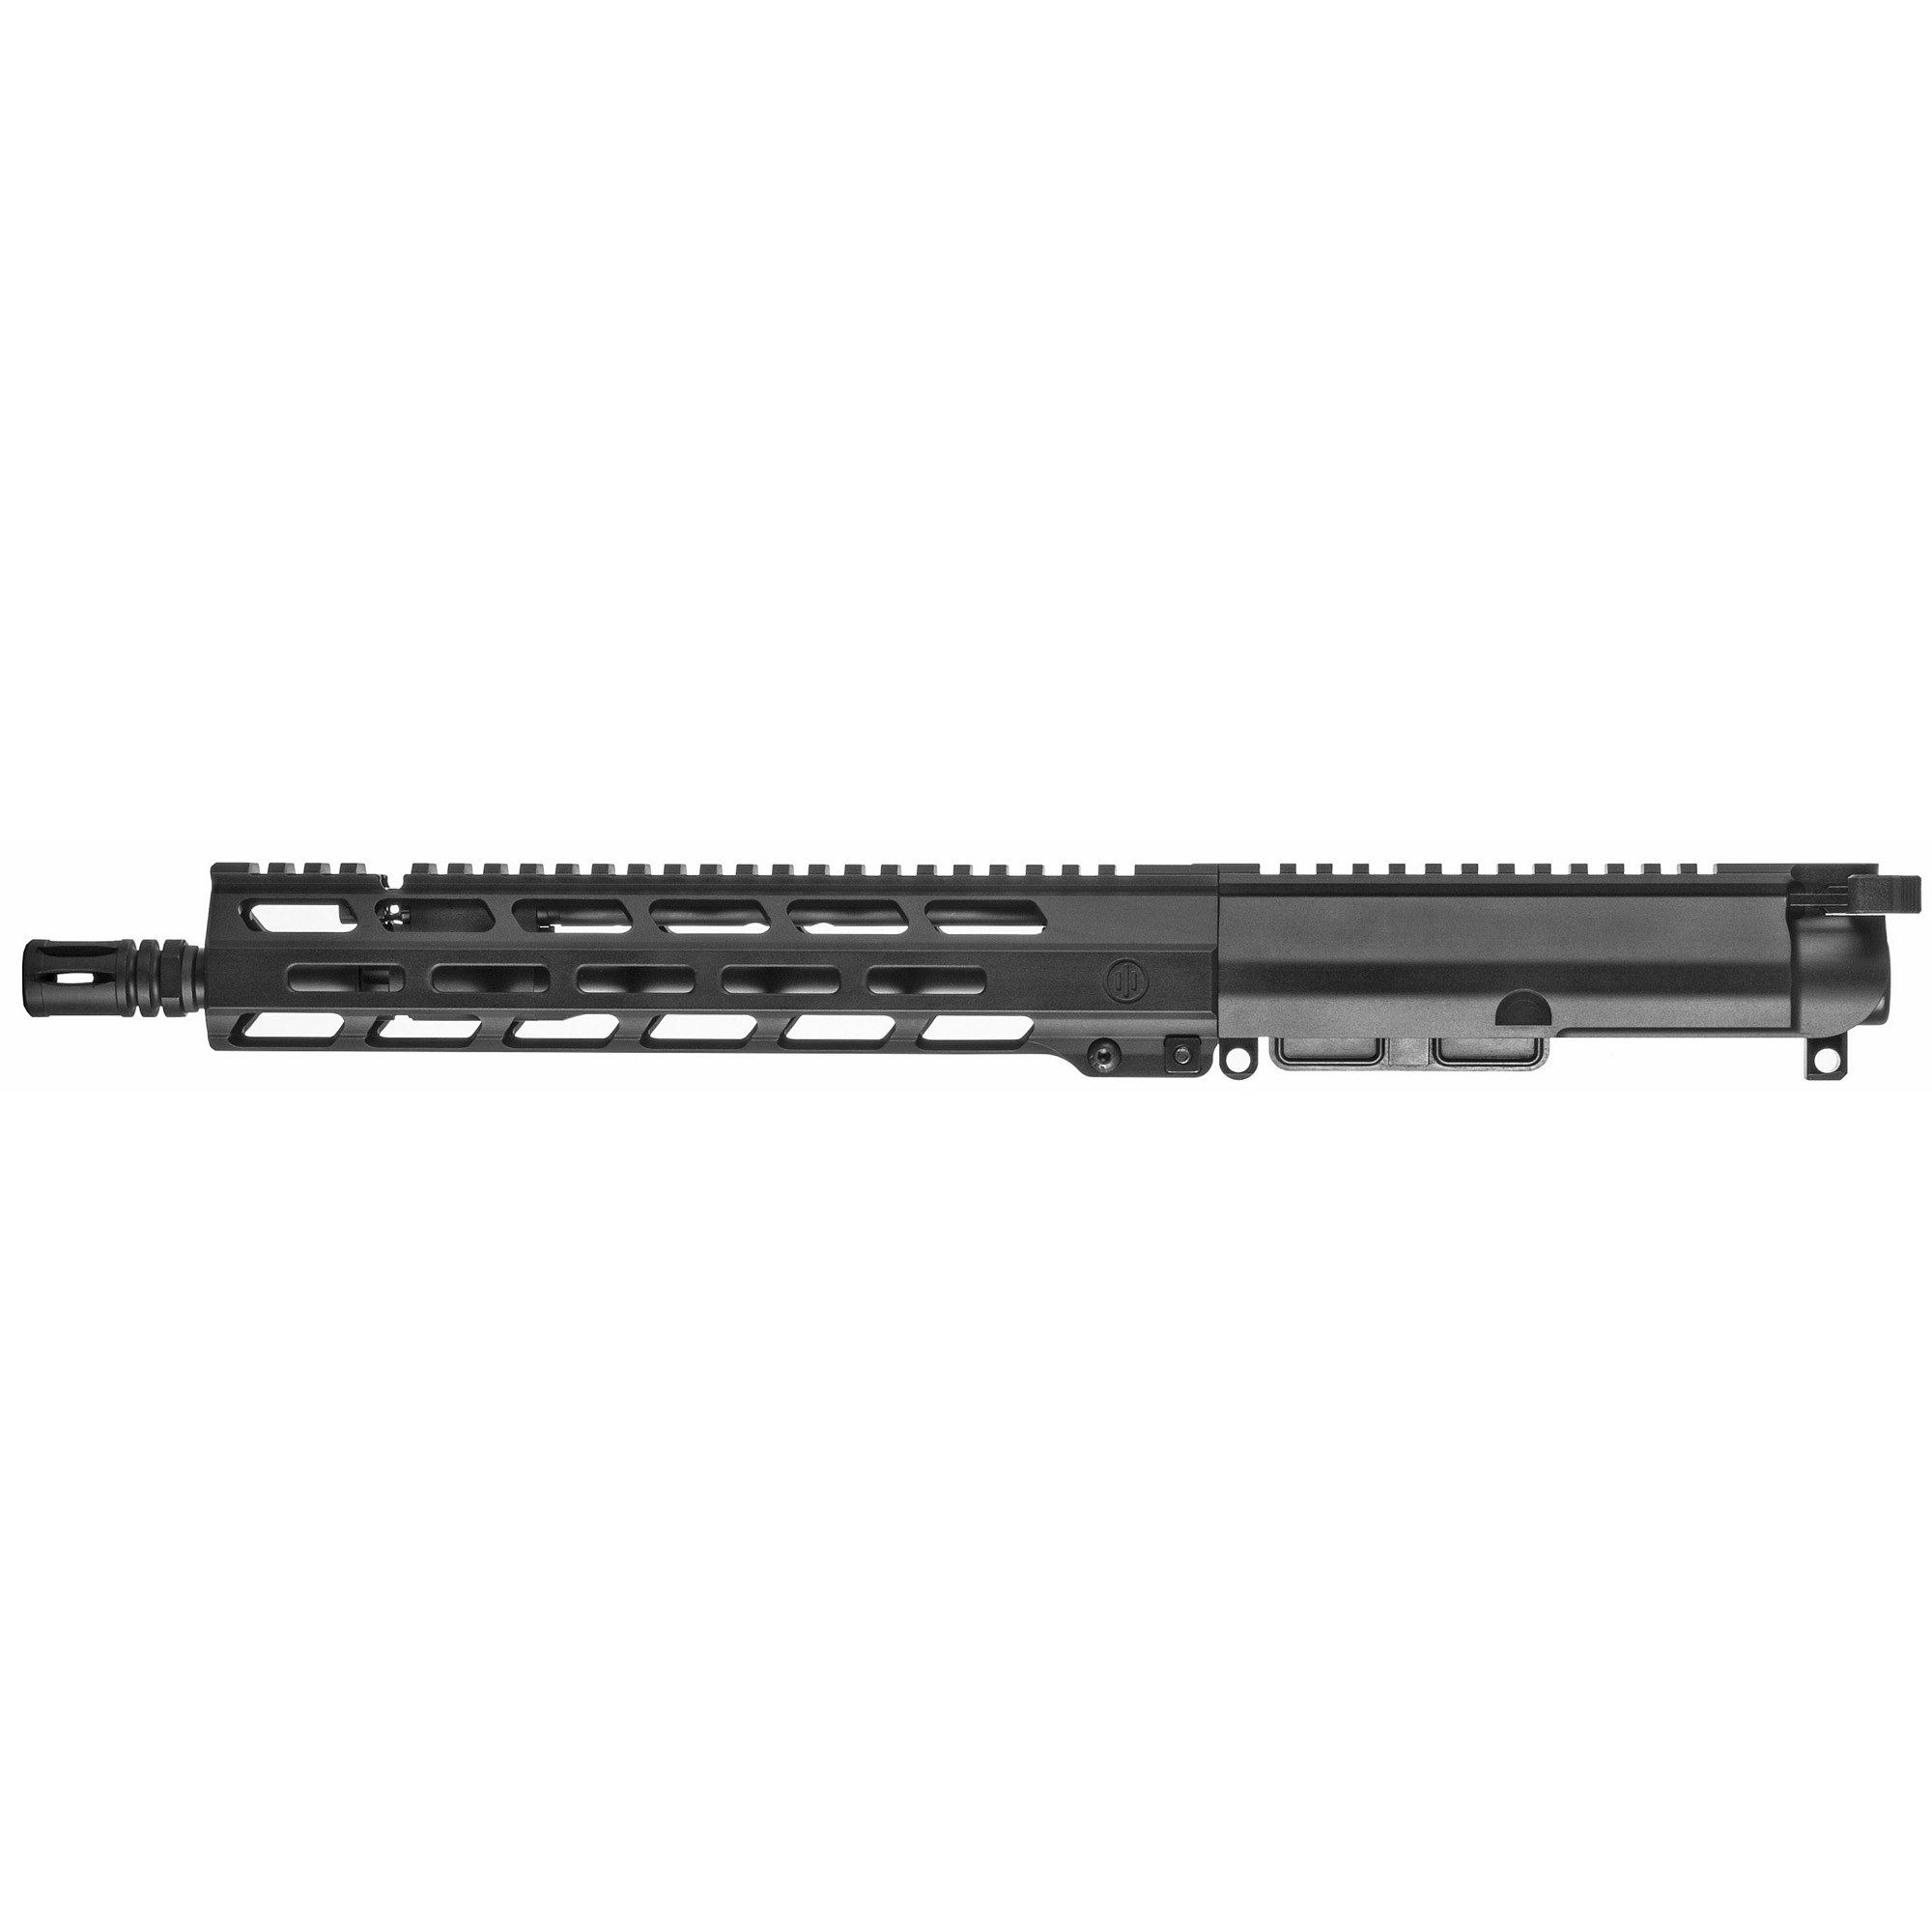 "The MK111 PRO Upper"" features the PWS long stroke piston system. Internally"" this line offers the tried and true system. Featuring a free-float MLOK handguard"" with the fully forged upper. The MK111 Pro is a no-nonsense tool for when you need a high value option that is relentless and unstoppable."